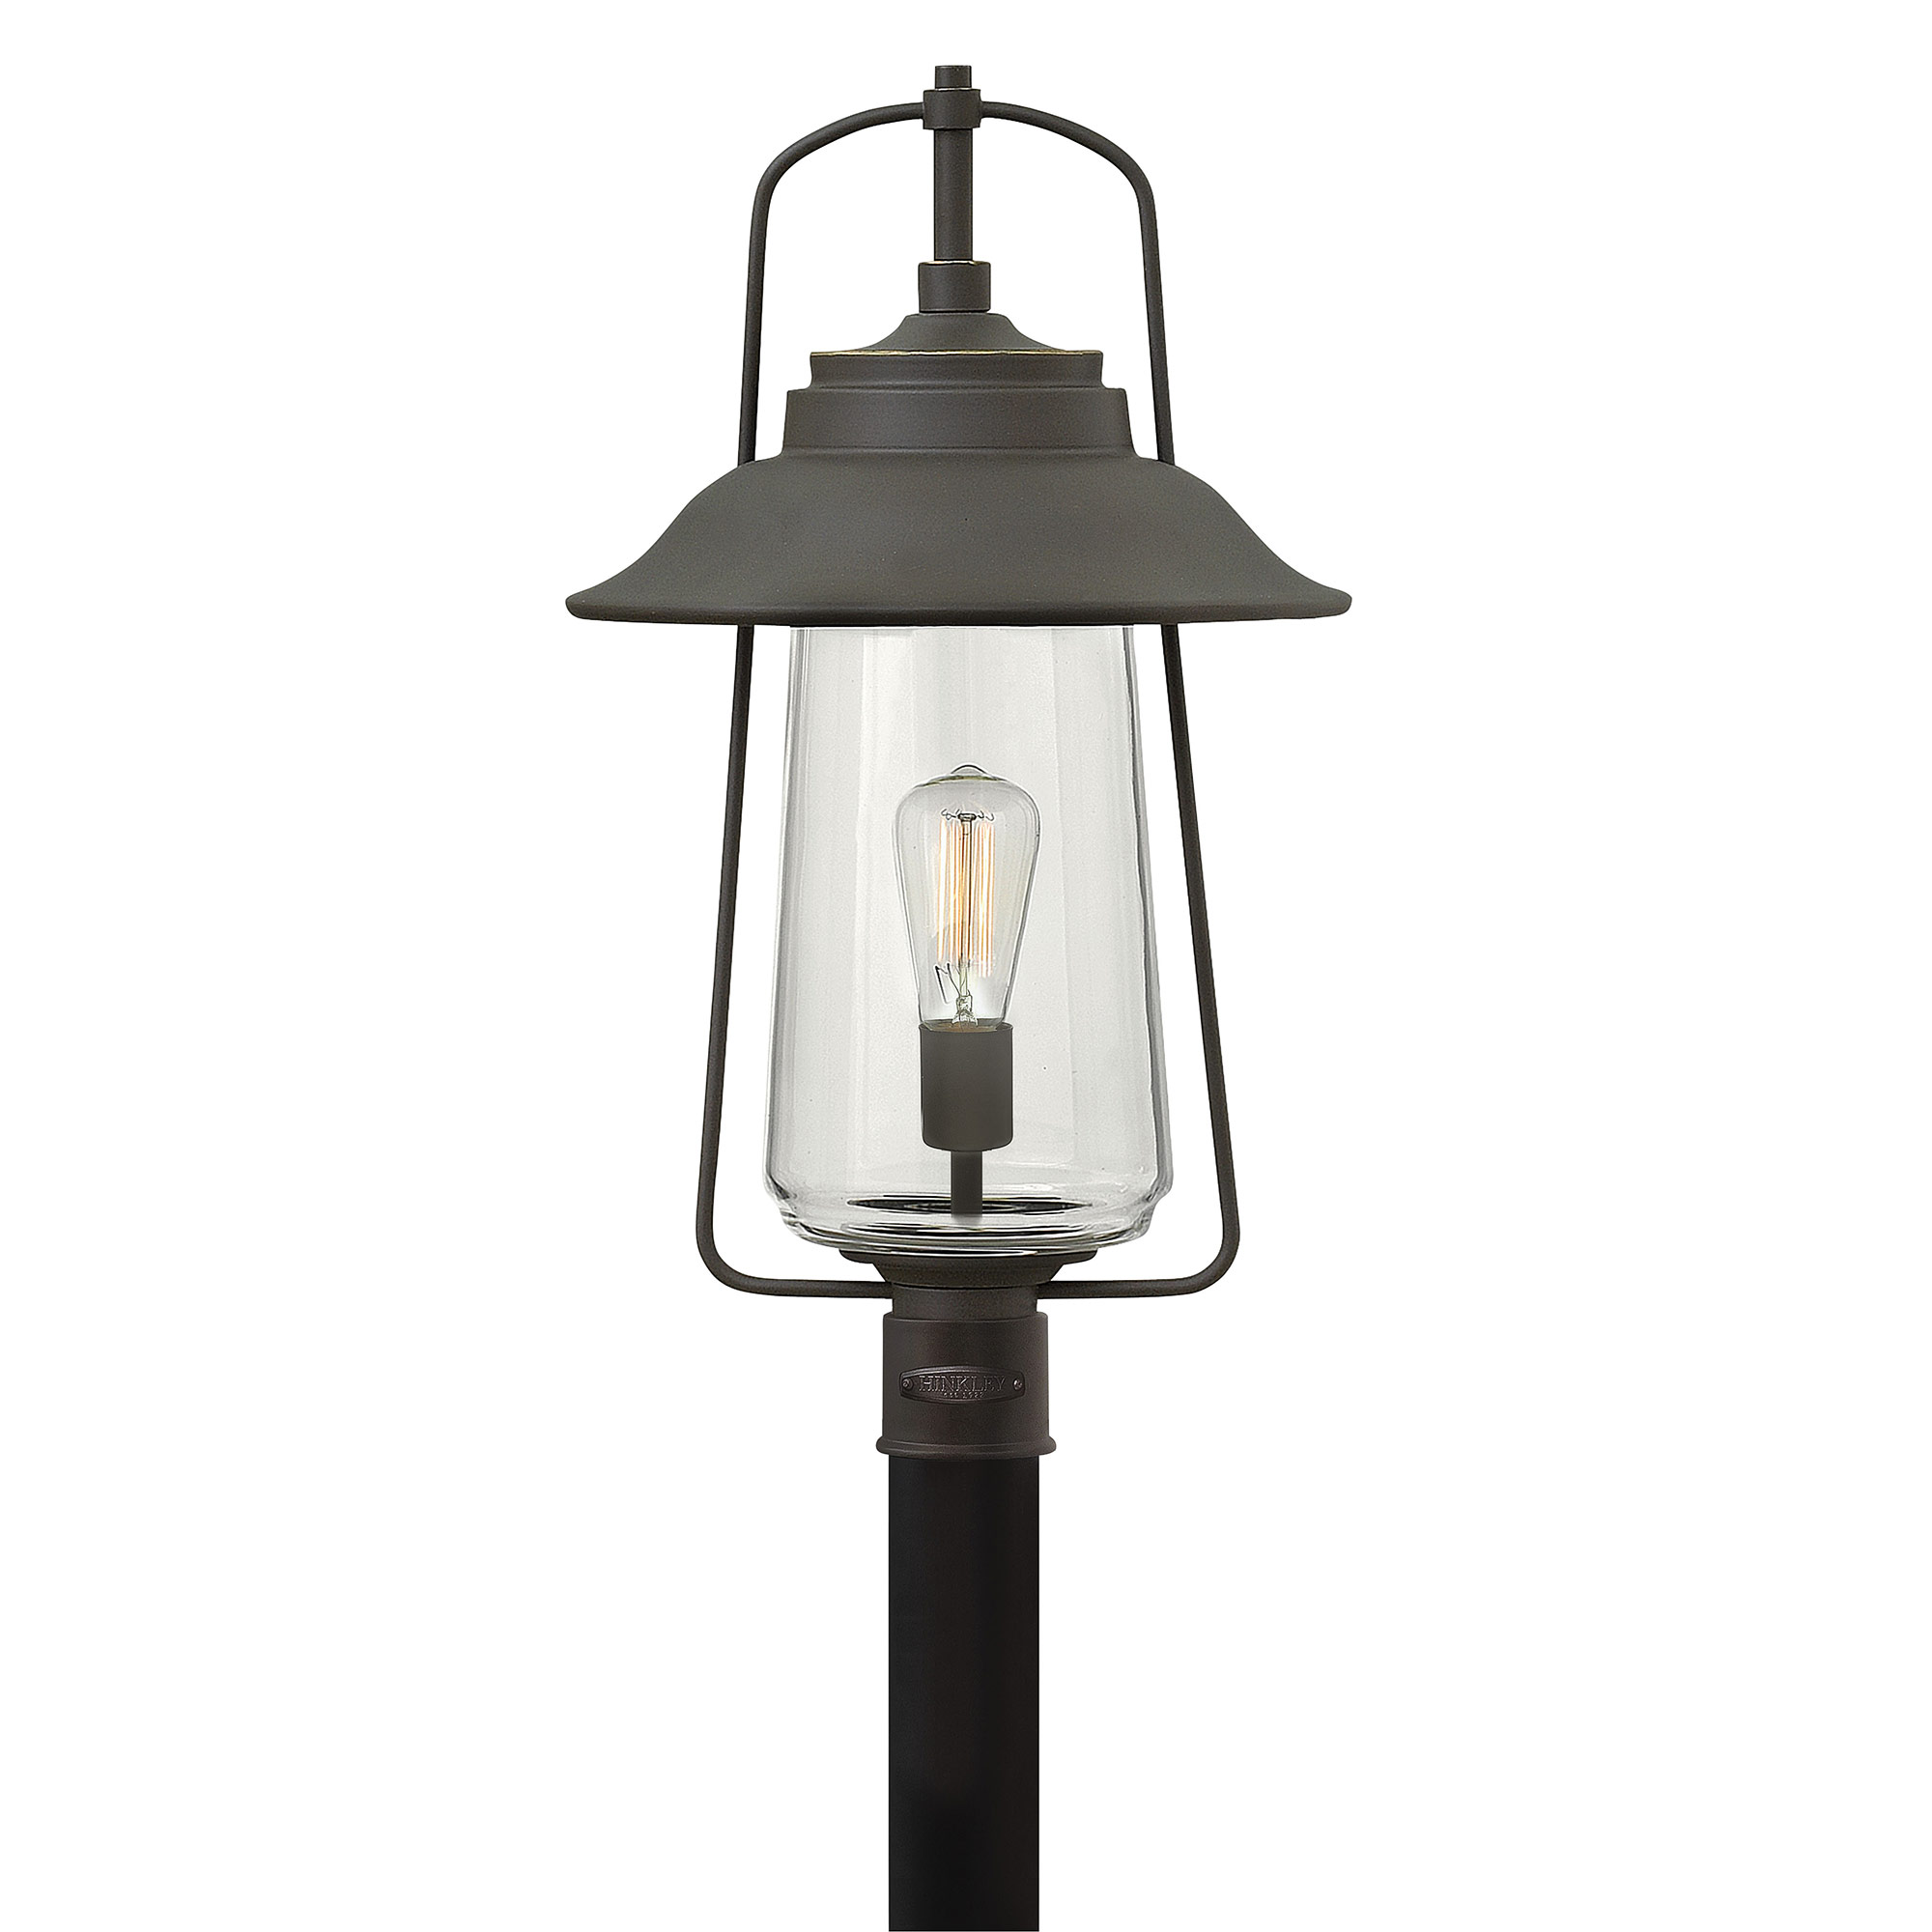 Belden place outdoor post mount by hinkley lighting 2861oz belden place outdoor post mount by hinkley lighting aloadofball Choice Image